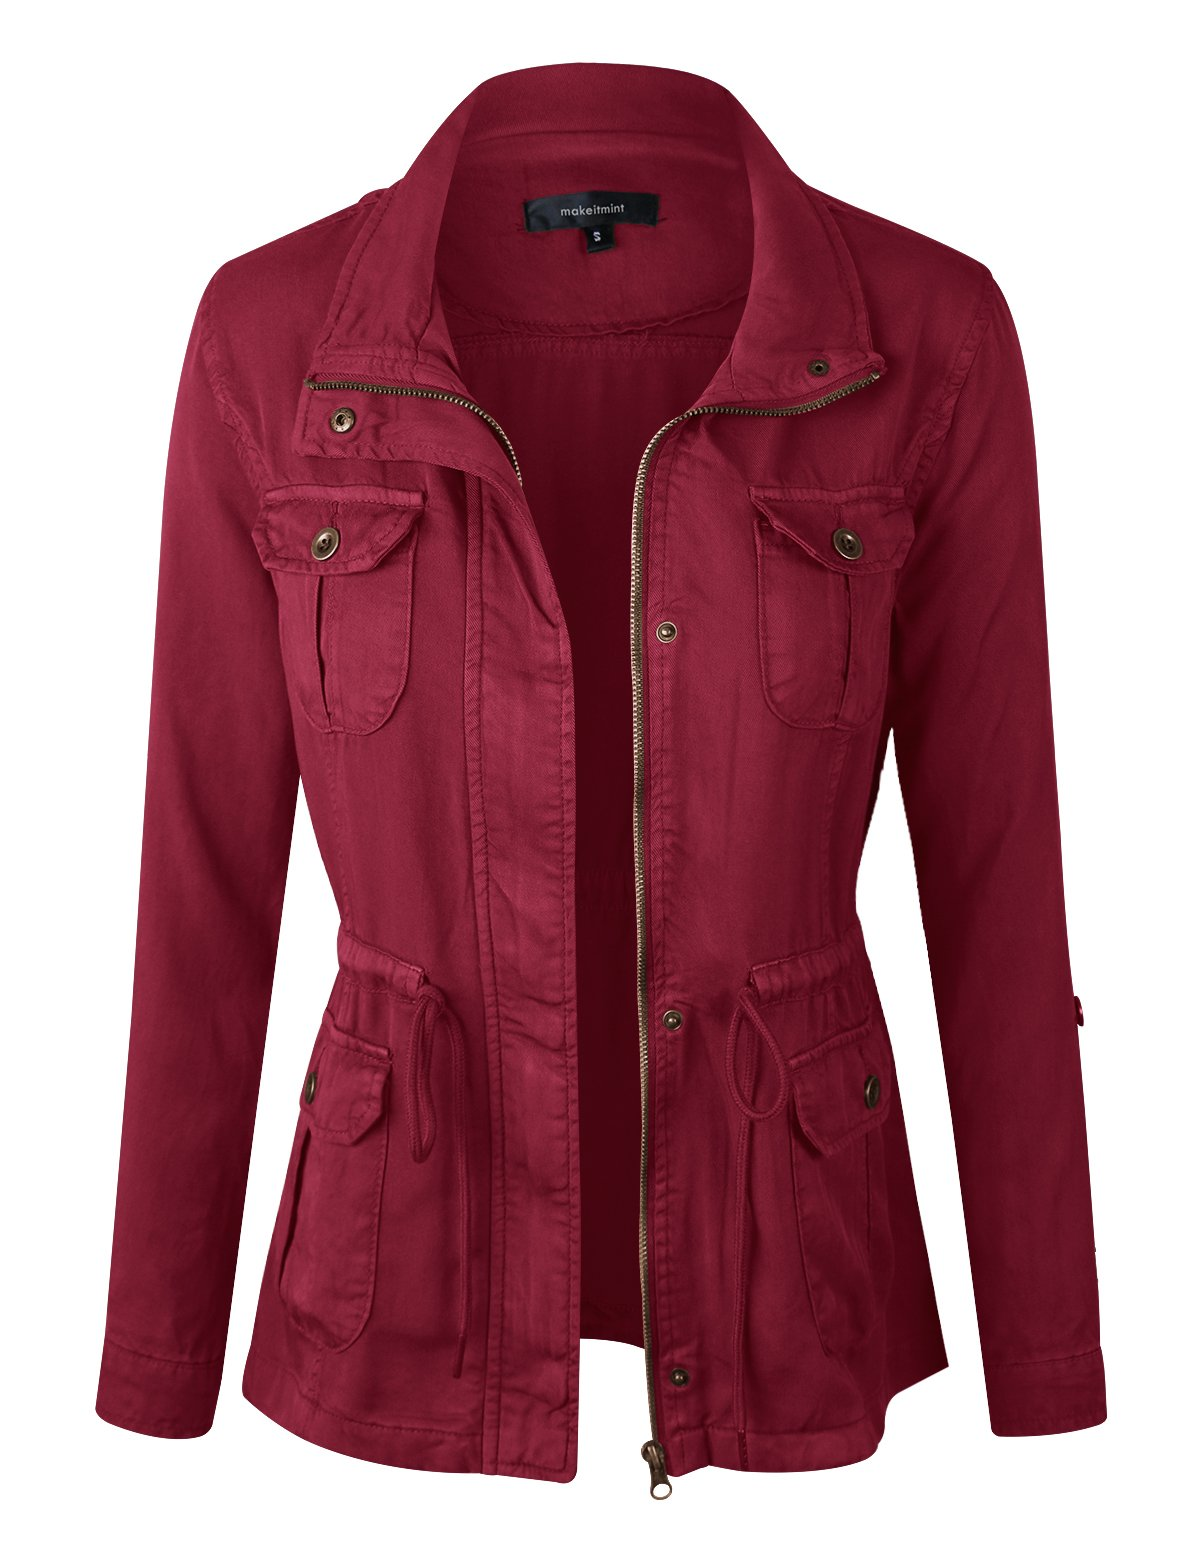 makeitmint Women's Soft Tencel Zip Up Utility Anorak Pocket Light-Weight Jacket YJZ0067-BURGUNDY-LRG